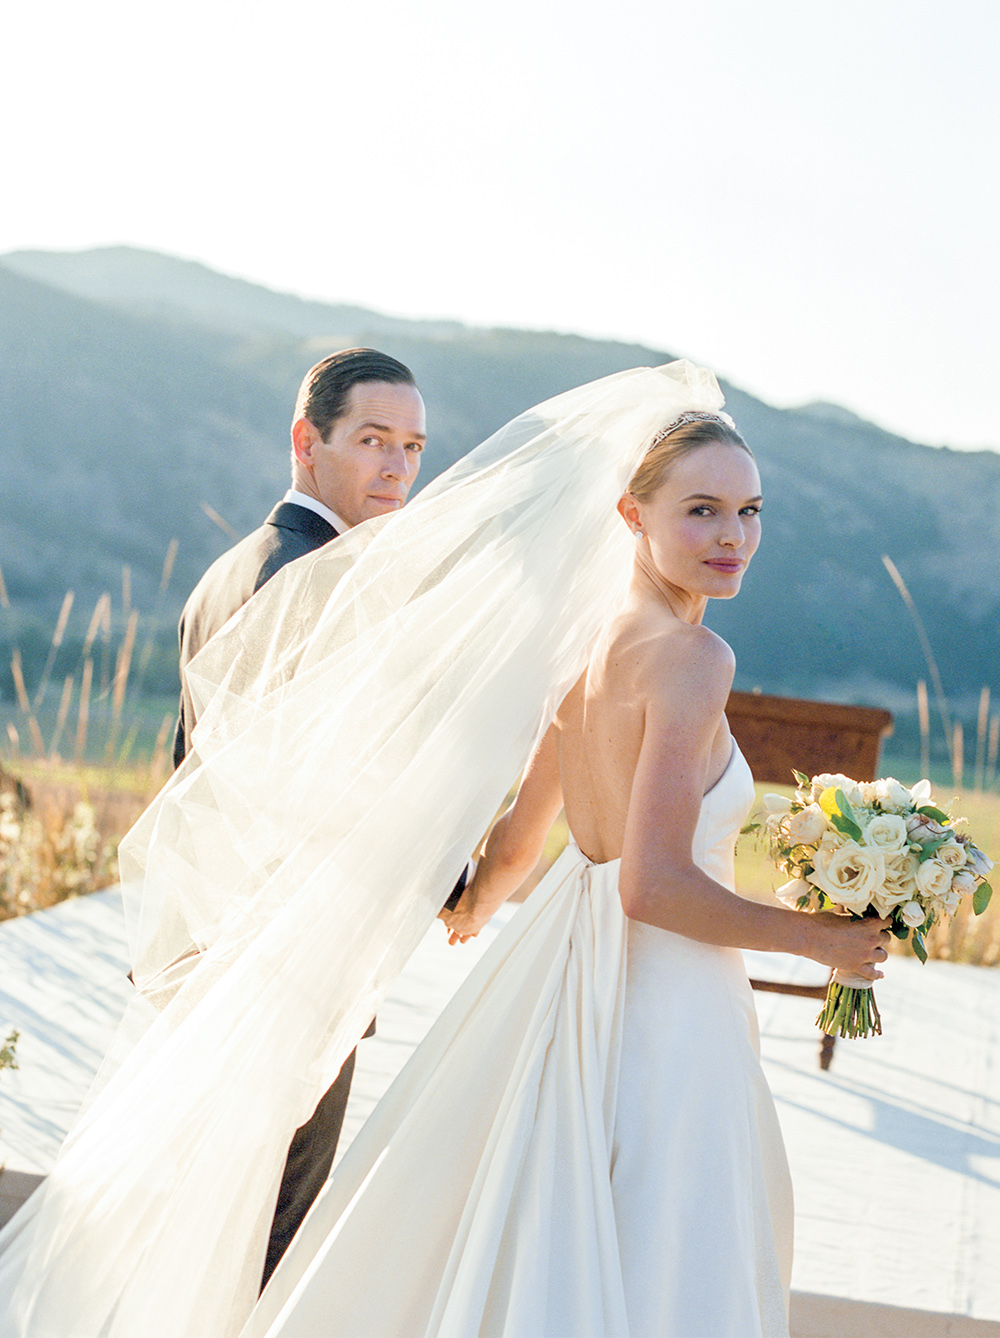 Kate Bosworth's big sky Montana wedding | follow along on Instagram @ thewildflowers.events